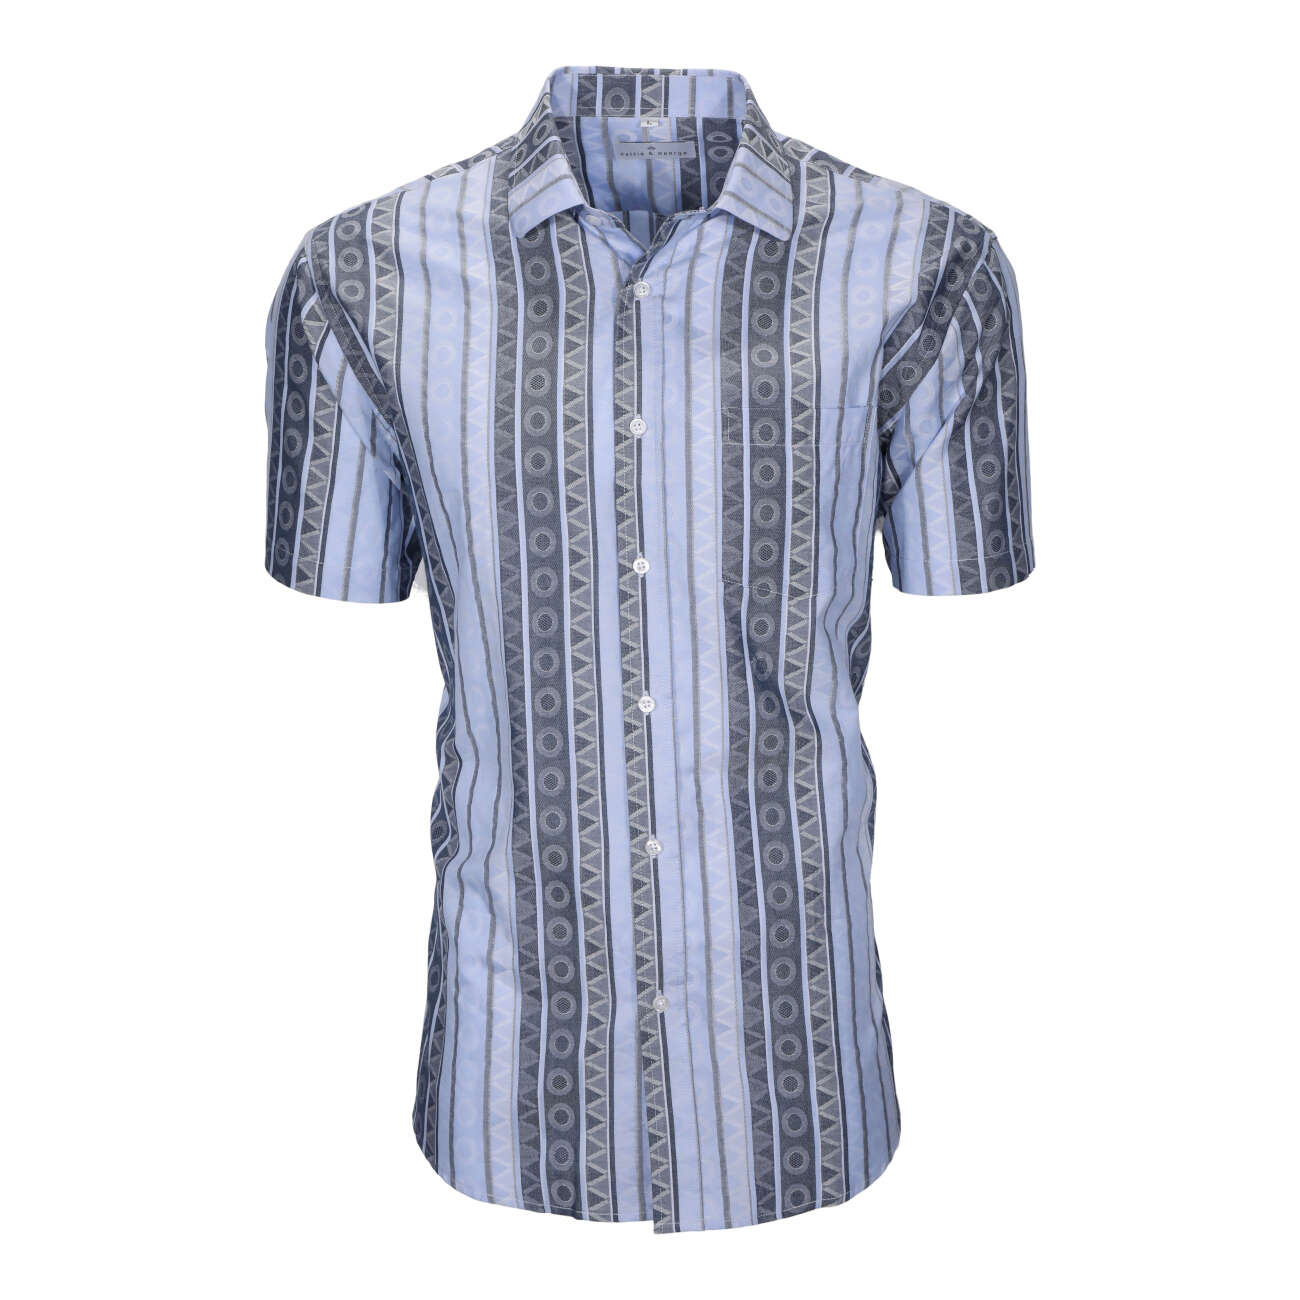 Blue and navy men's short sleeve dress shirt with a vertical circle and triangle pattern.